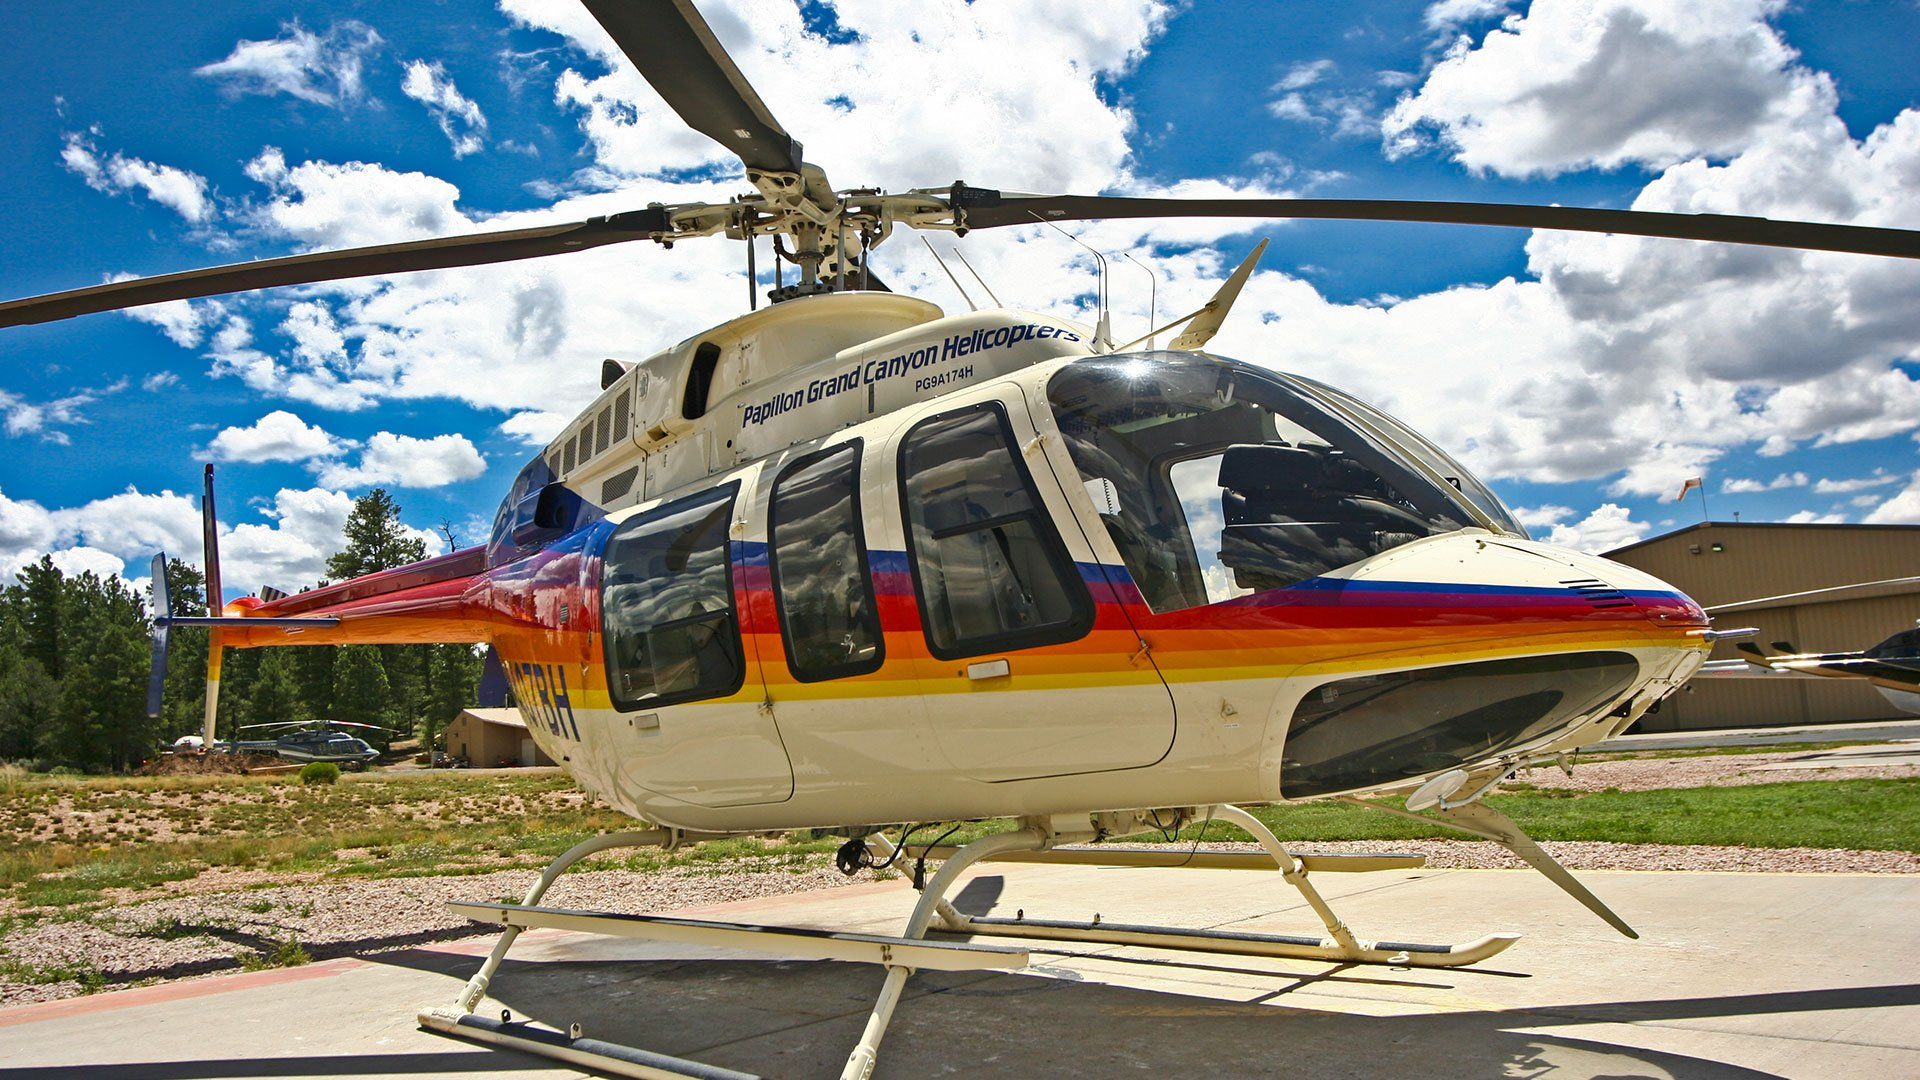 Bell helicopter landed on the airport tarmac in Grand Canyon National Park.